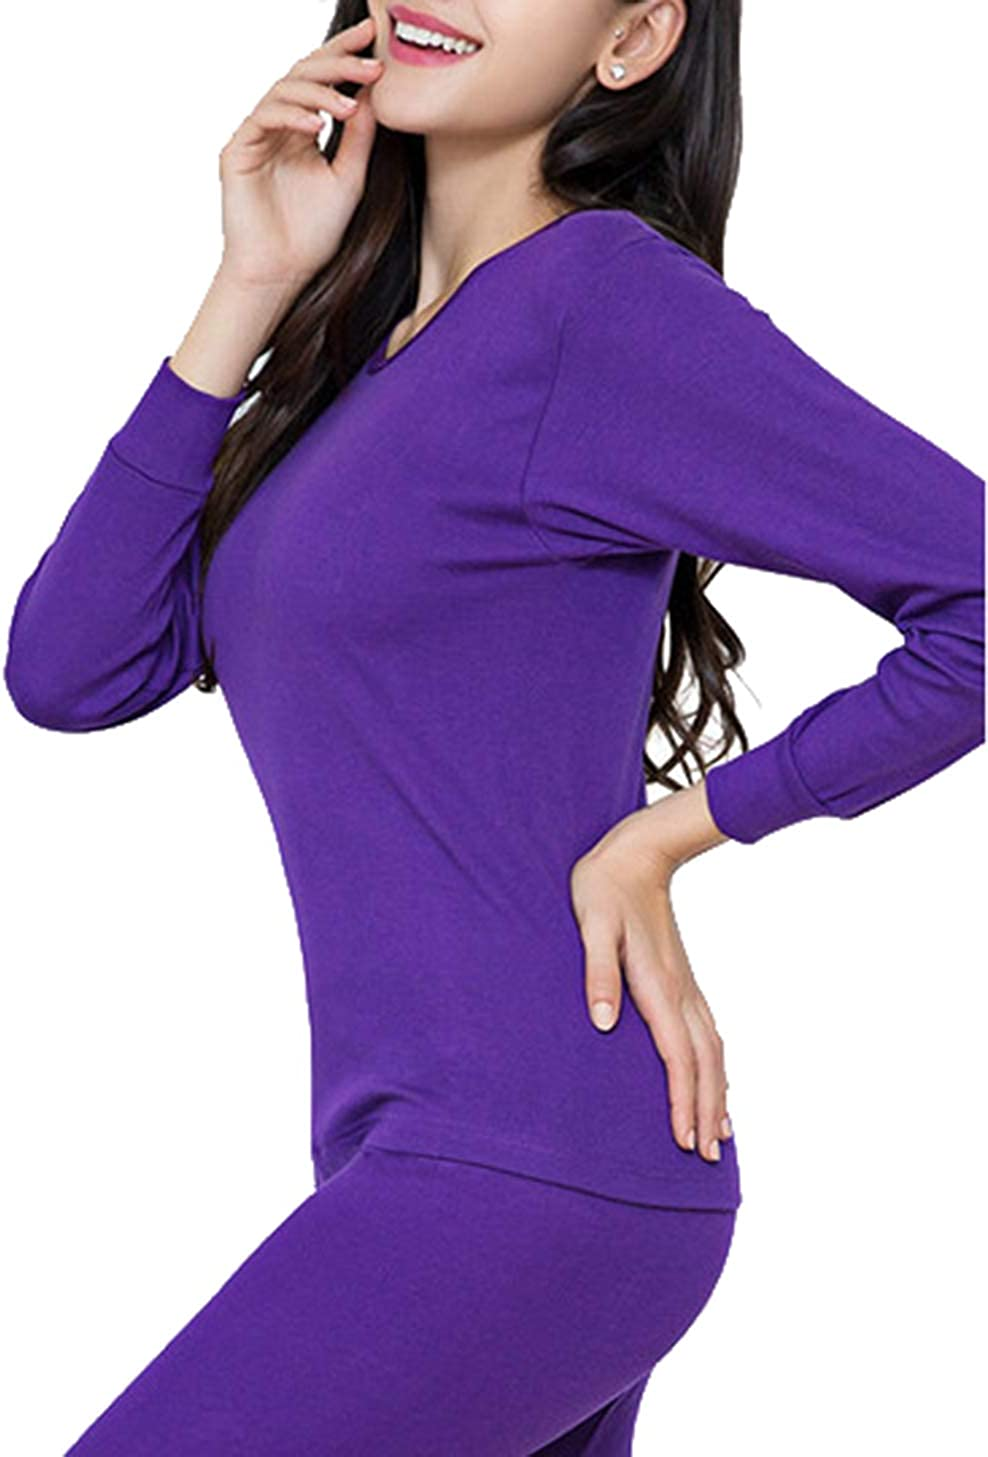 Seaoeey Women's Thin Thermal Underwear Set Base Layer Pjs Long Johns Tops and Bottom for Outdoor and Indoor